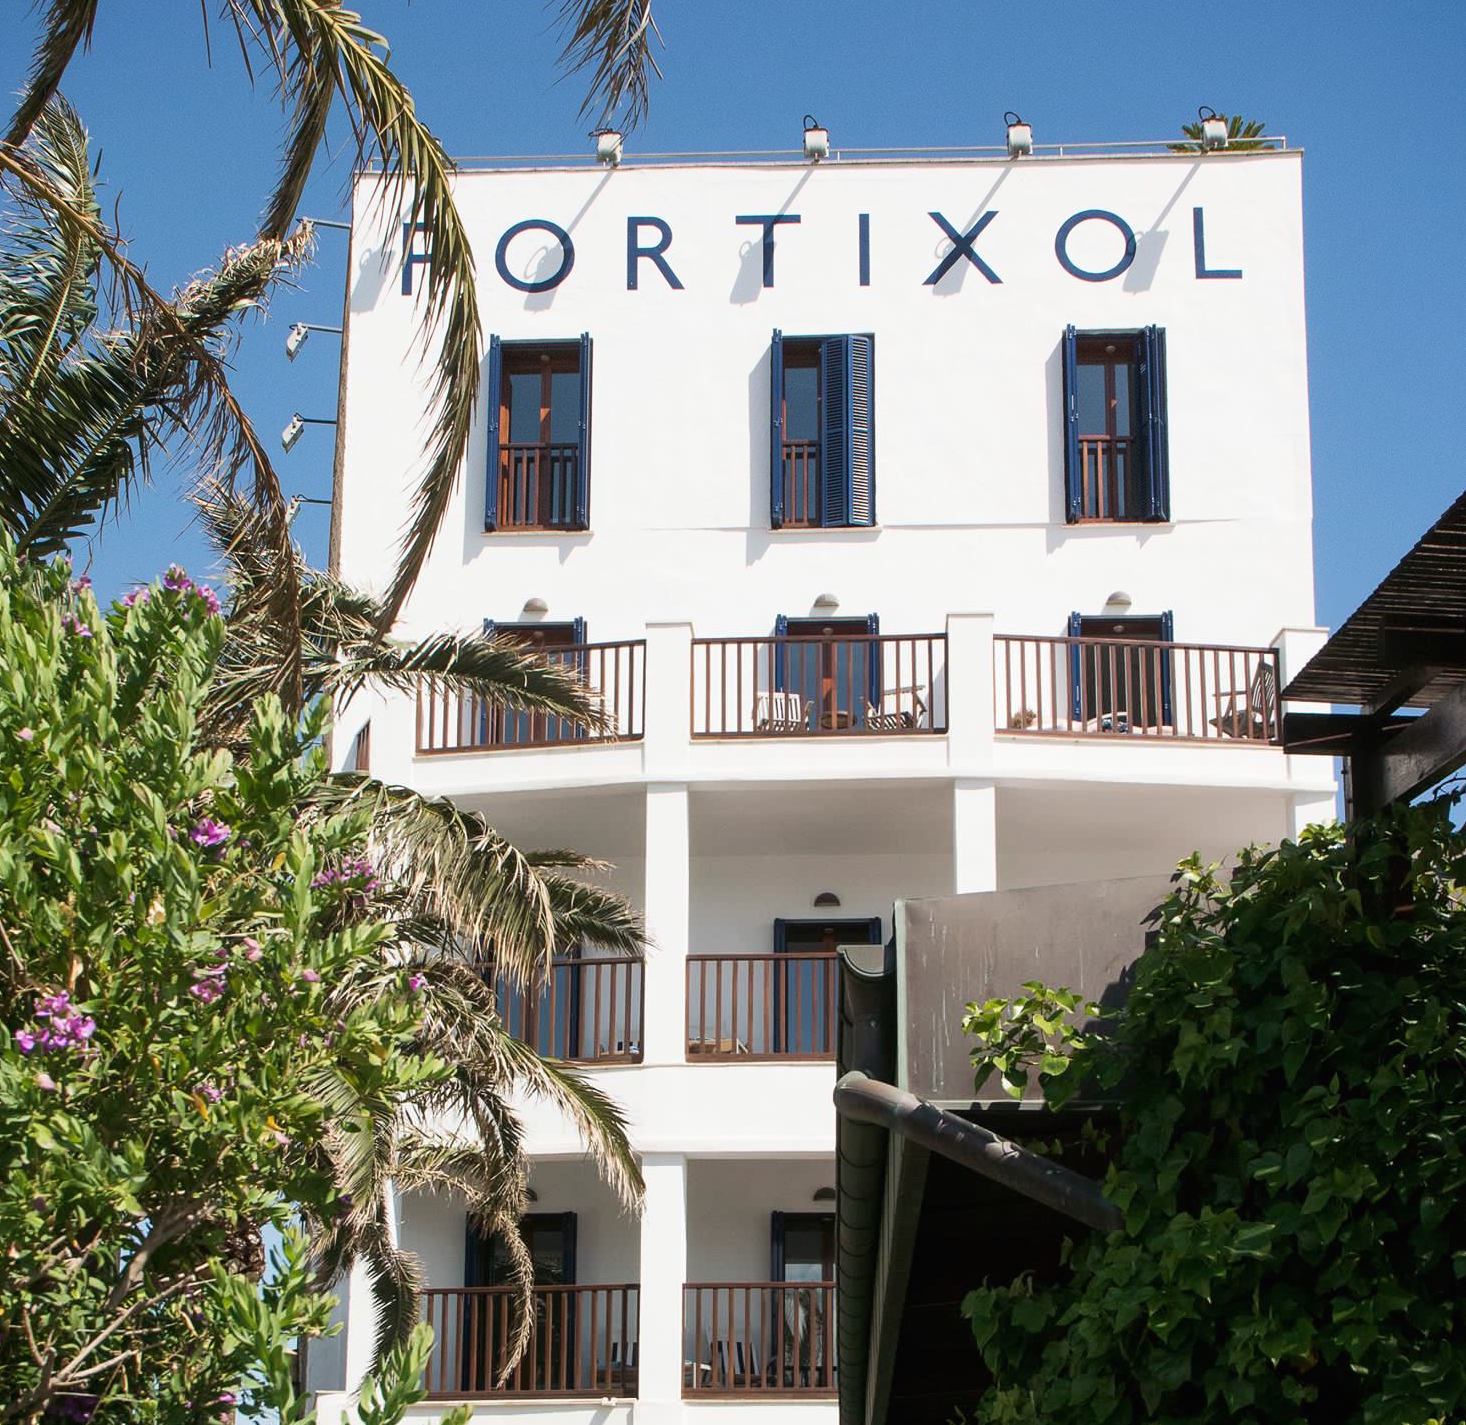 Sit outside on your terrace at Portixol Hotel - Palma with special offers from MallorcanTonic